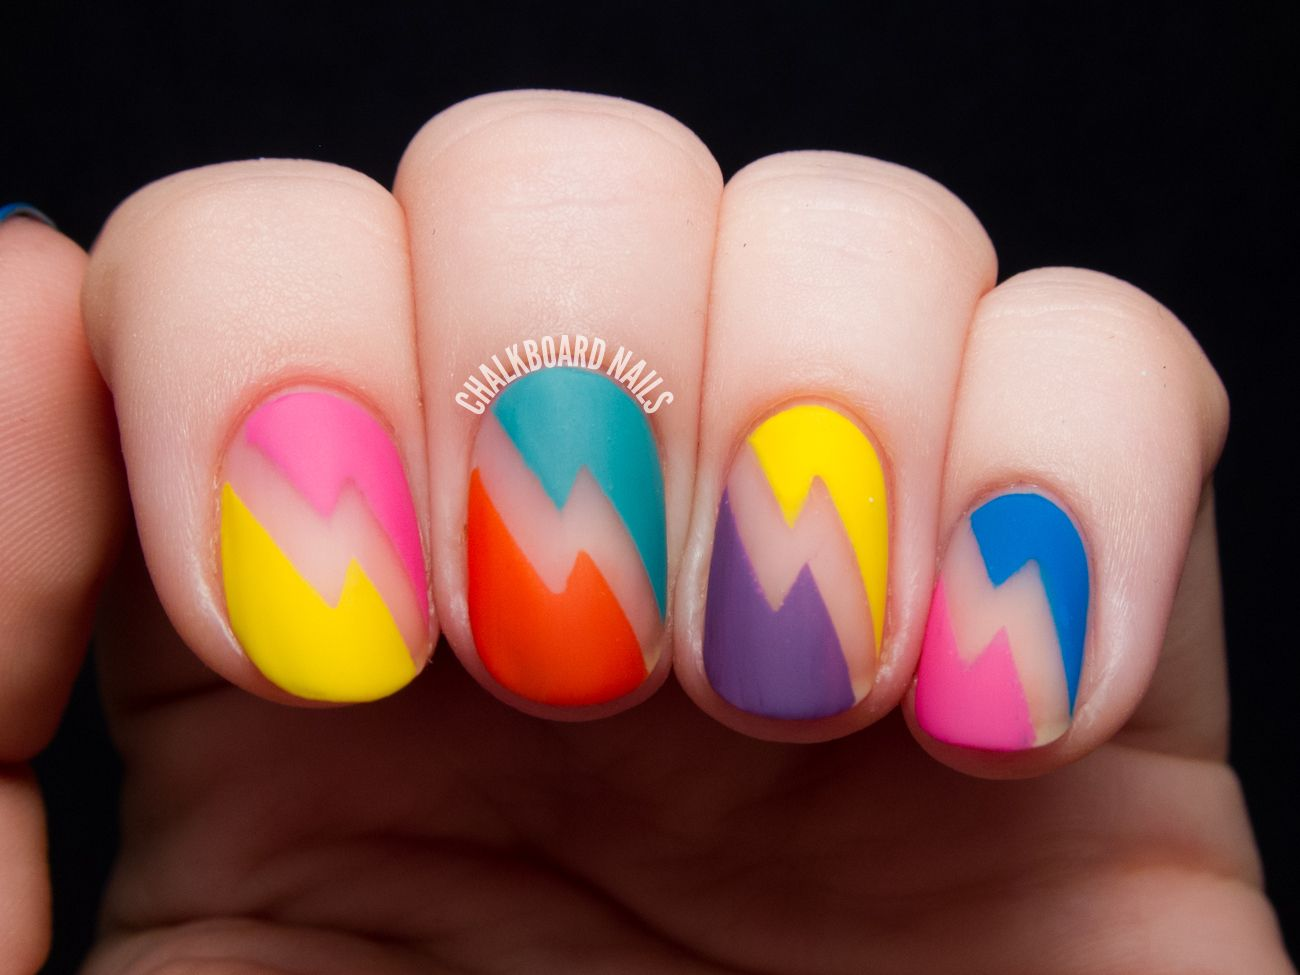 - 13 Cool Matte Nail Design Ideas - Unique Matte Nail Polish Art